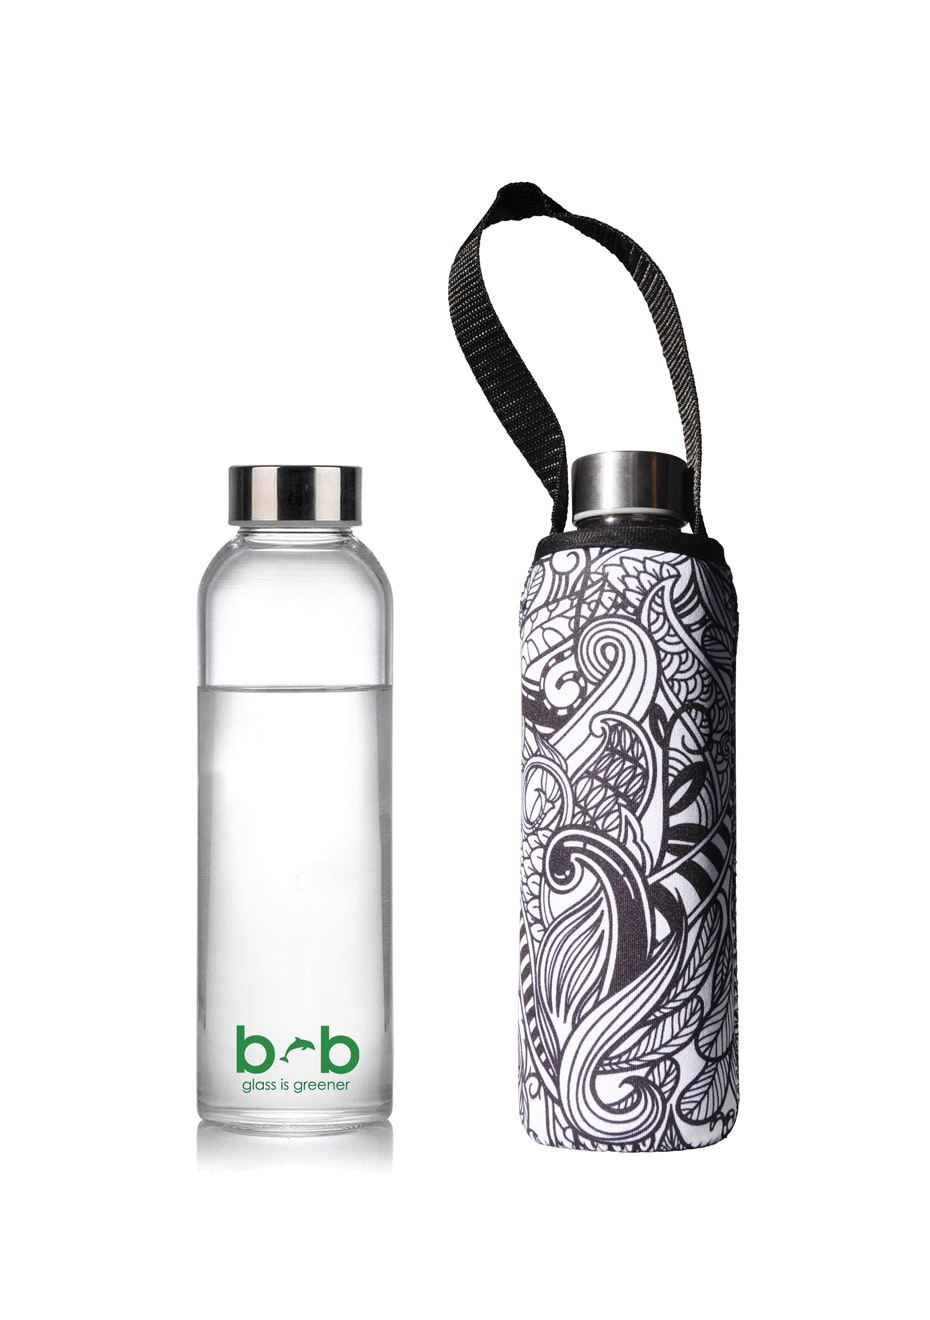 BBBYO - Glass Is Greener Bottle 570 ml + Carry Cover (Koru Print) - 570 ml